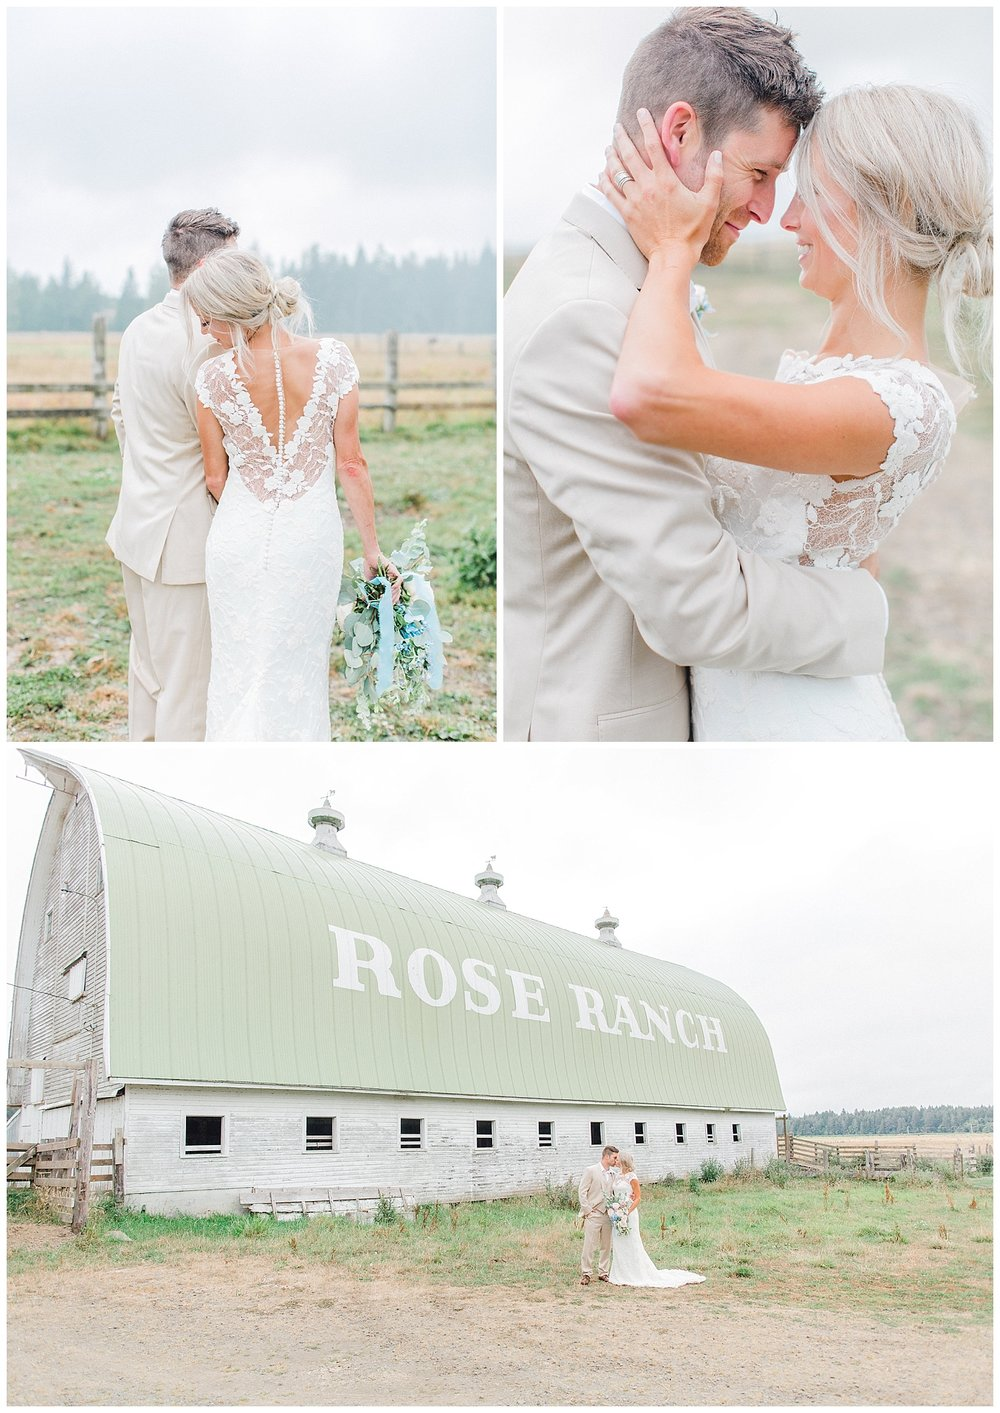 Emma Rose Company Dream Chasers Workshop and Education for Photographer | Light and Airy Rose Ranch Dream Barn Venue Wedding_0012.jpg